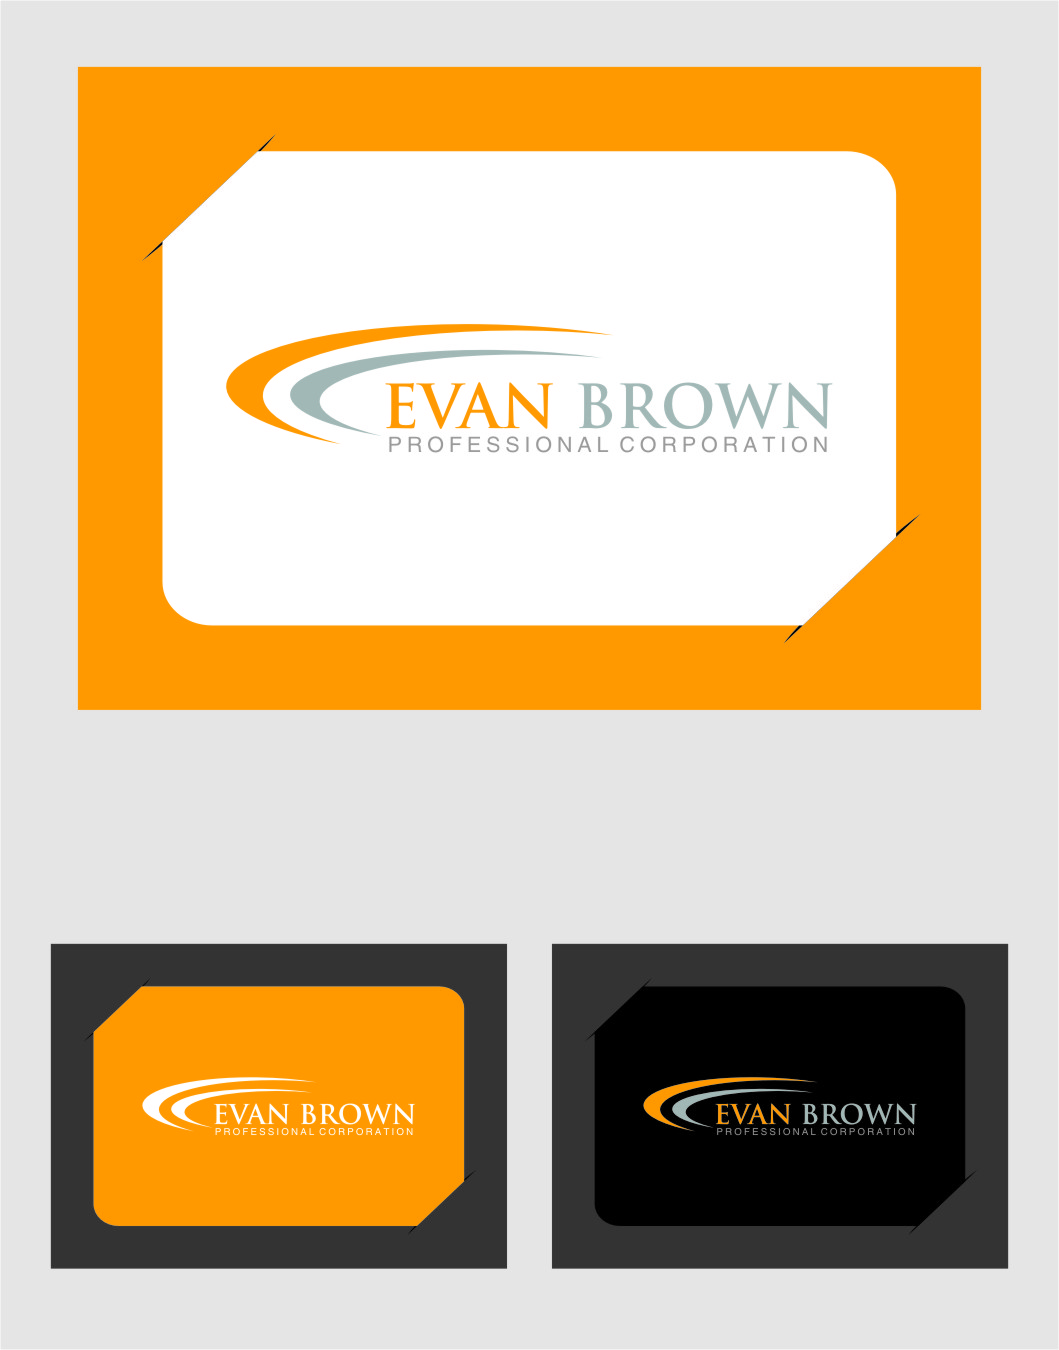 Logo Design by Ngepet_art - Entry No. 139 in the Logo Design Contest Inspiring Logo Design for Evan Brown Professional Corporation.